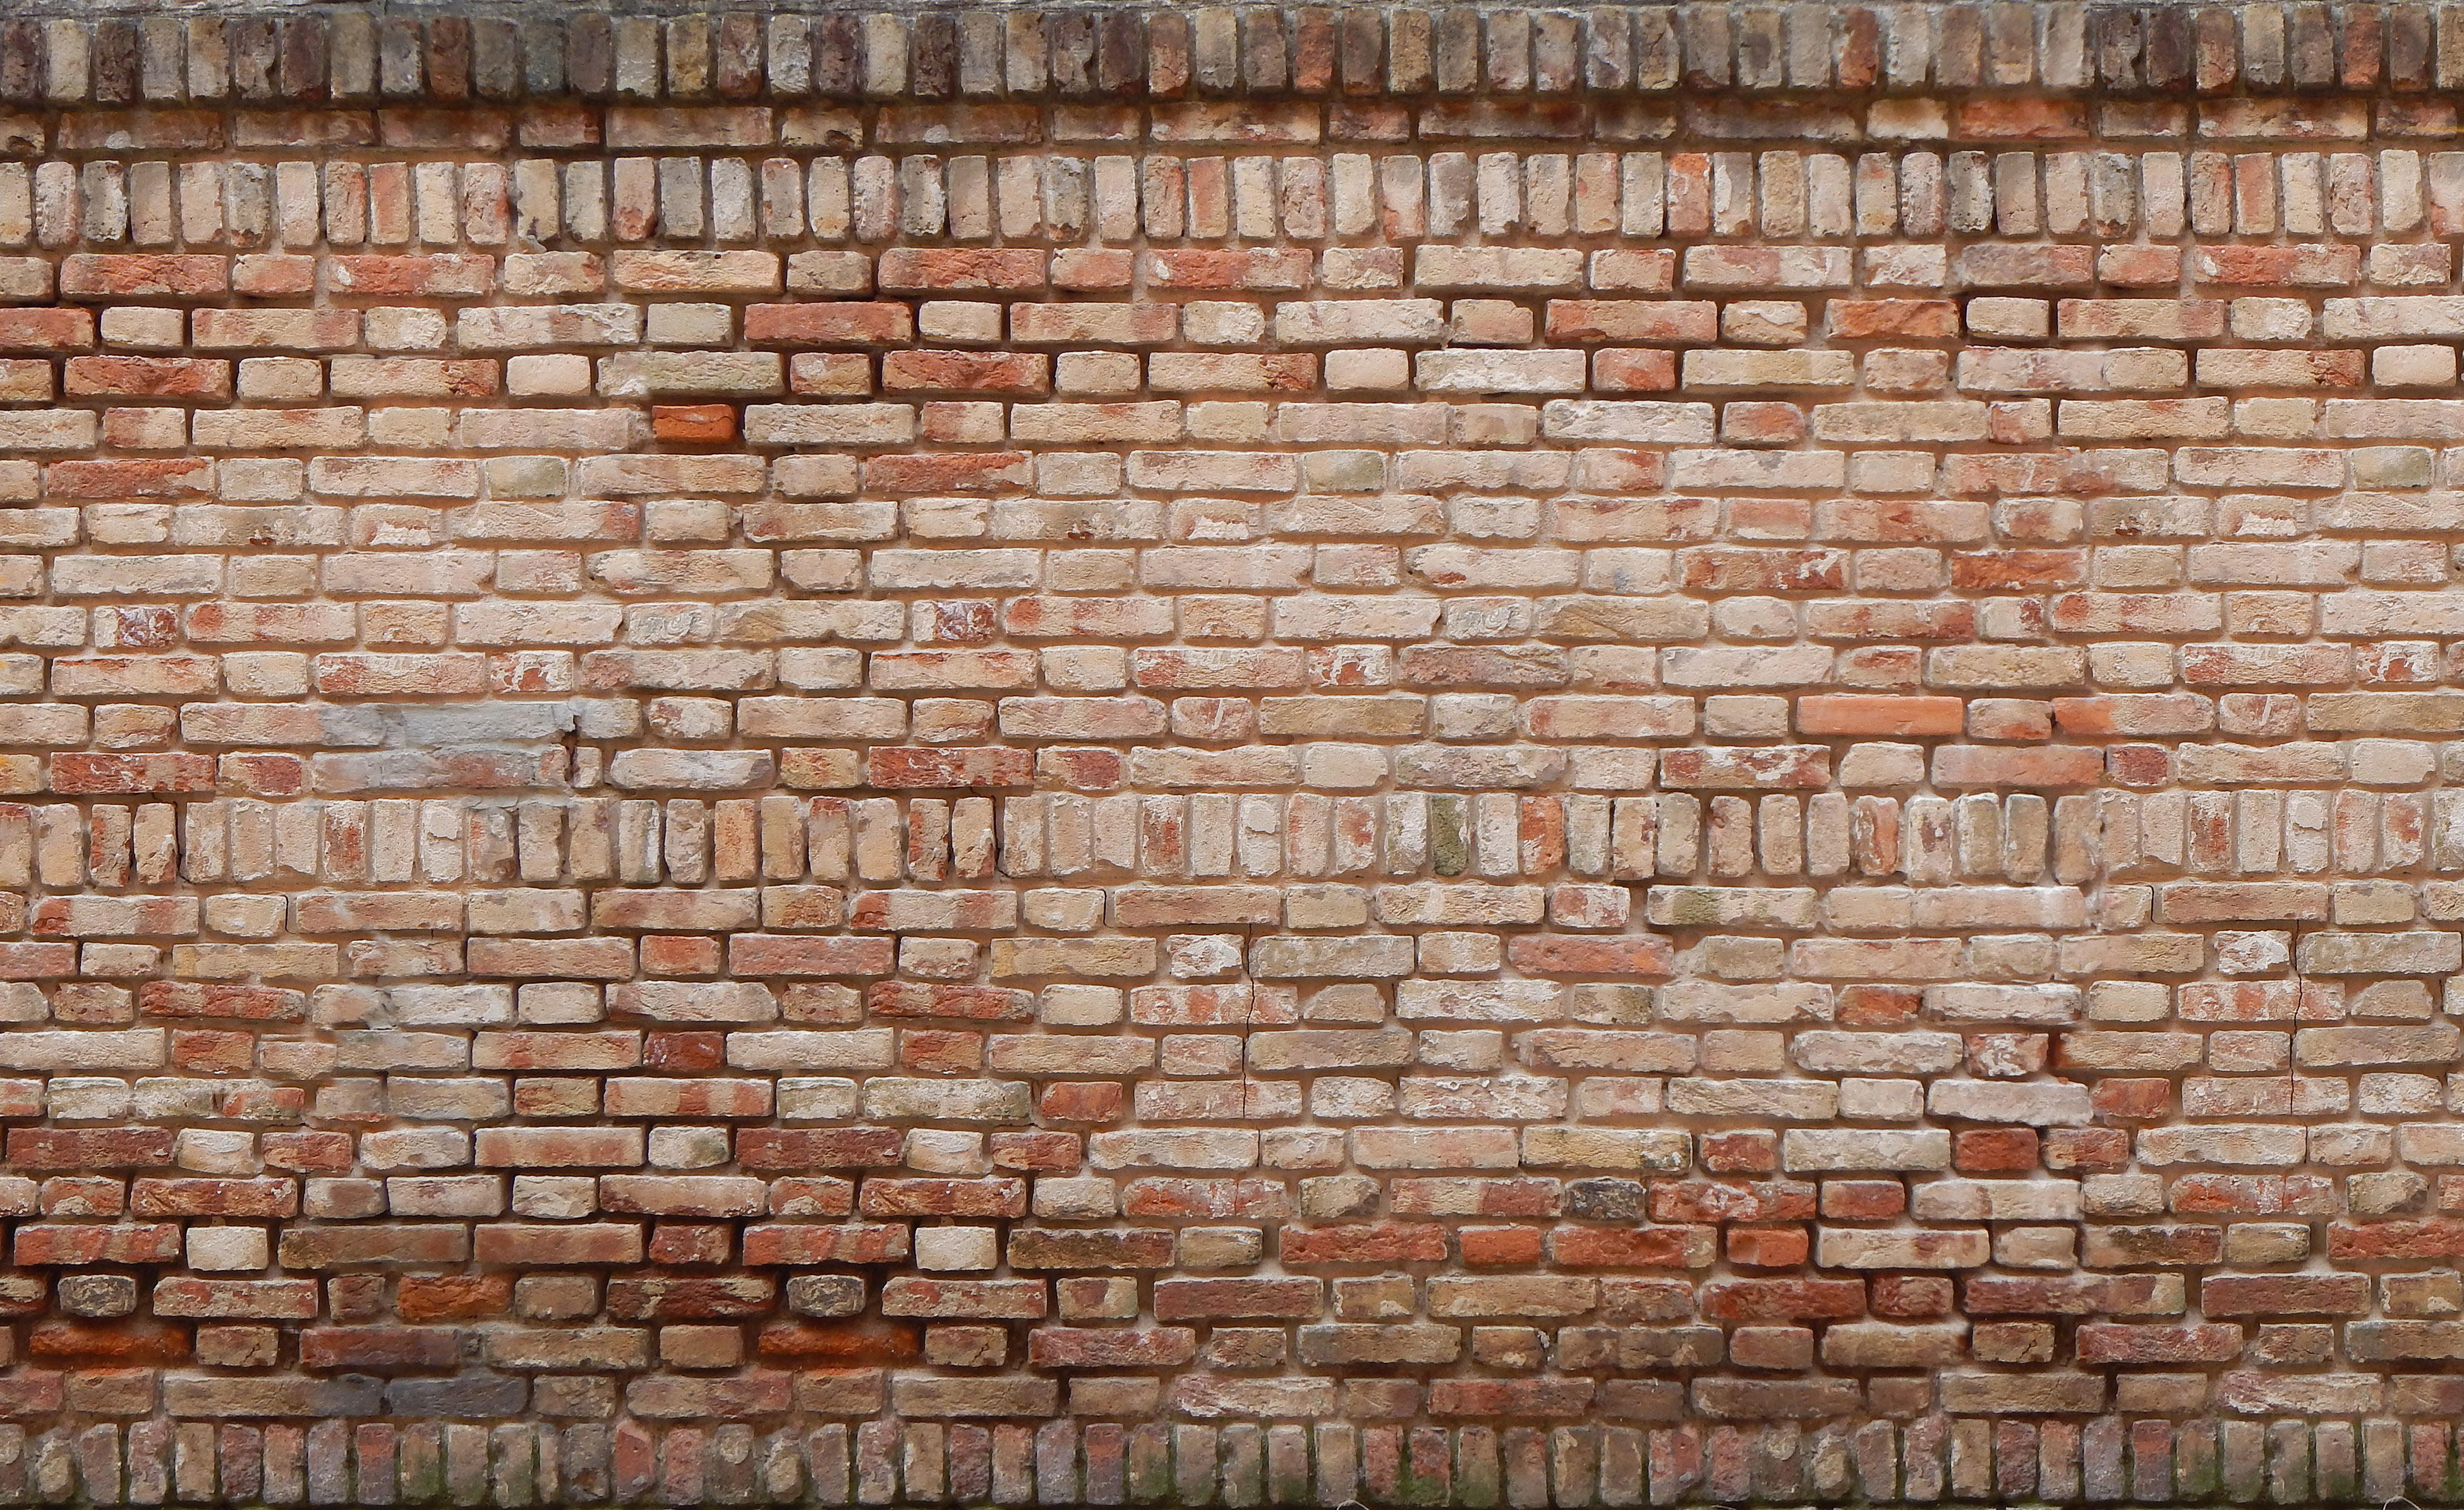 Free Photo Brick Wall Rusty Square Stone Free